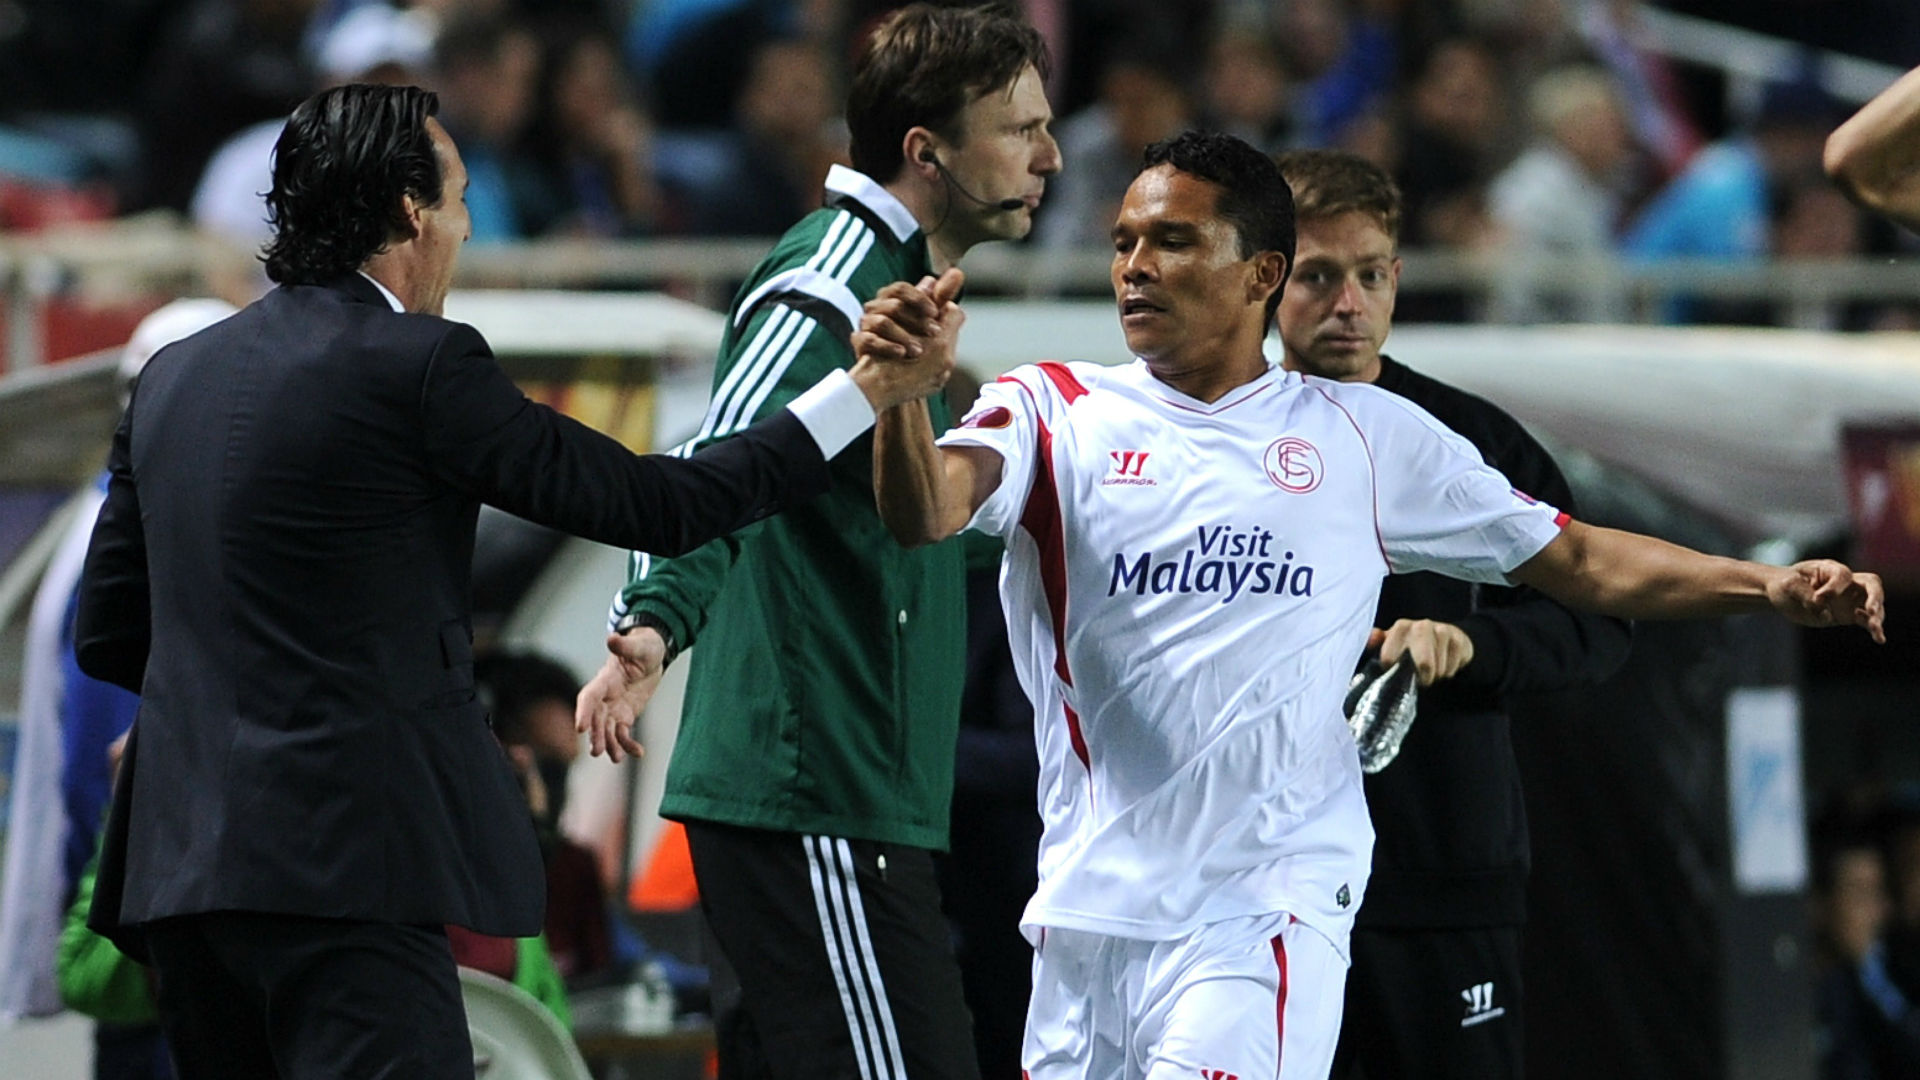 Emery voudrait toujours Bacca